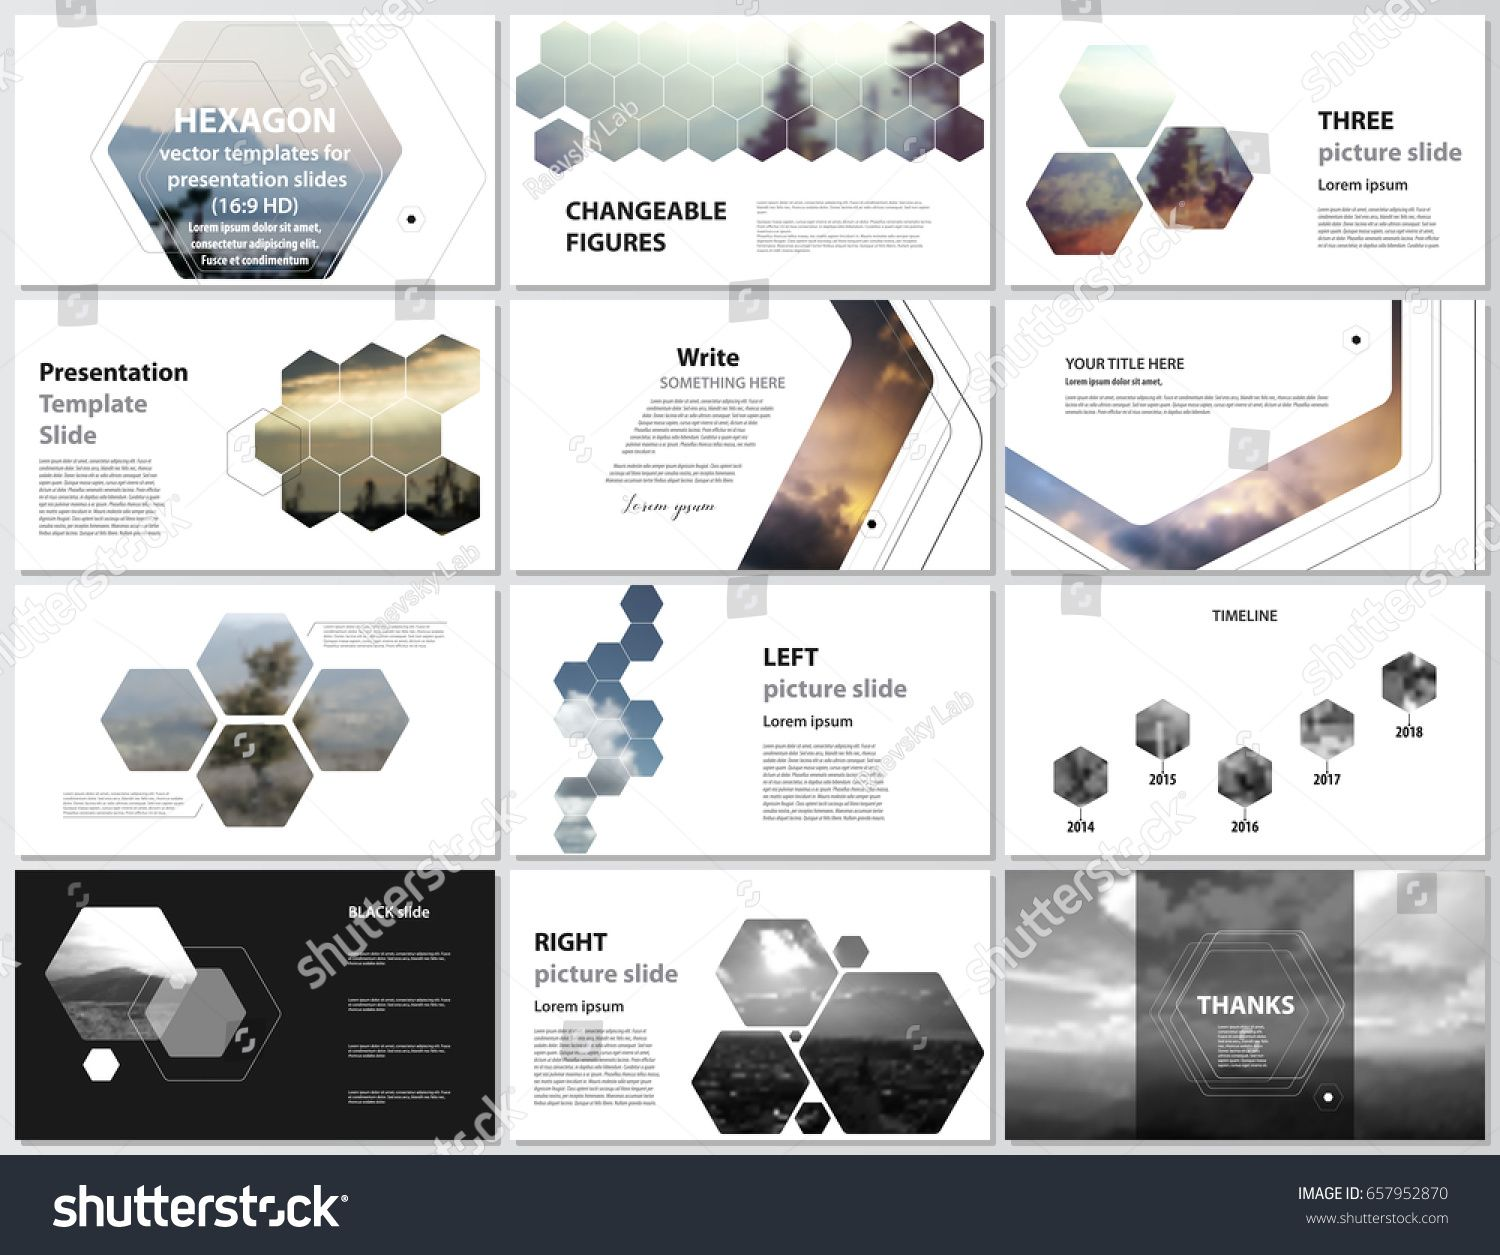 vector transparent stock Vector defintion design. The minimalistic abstract illustration